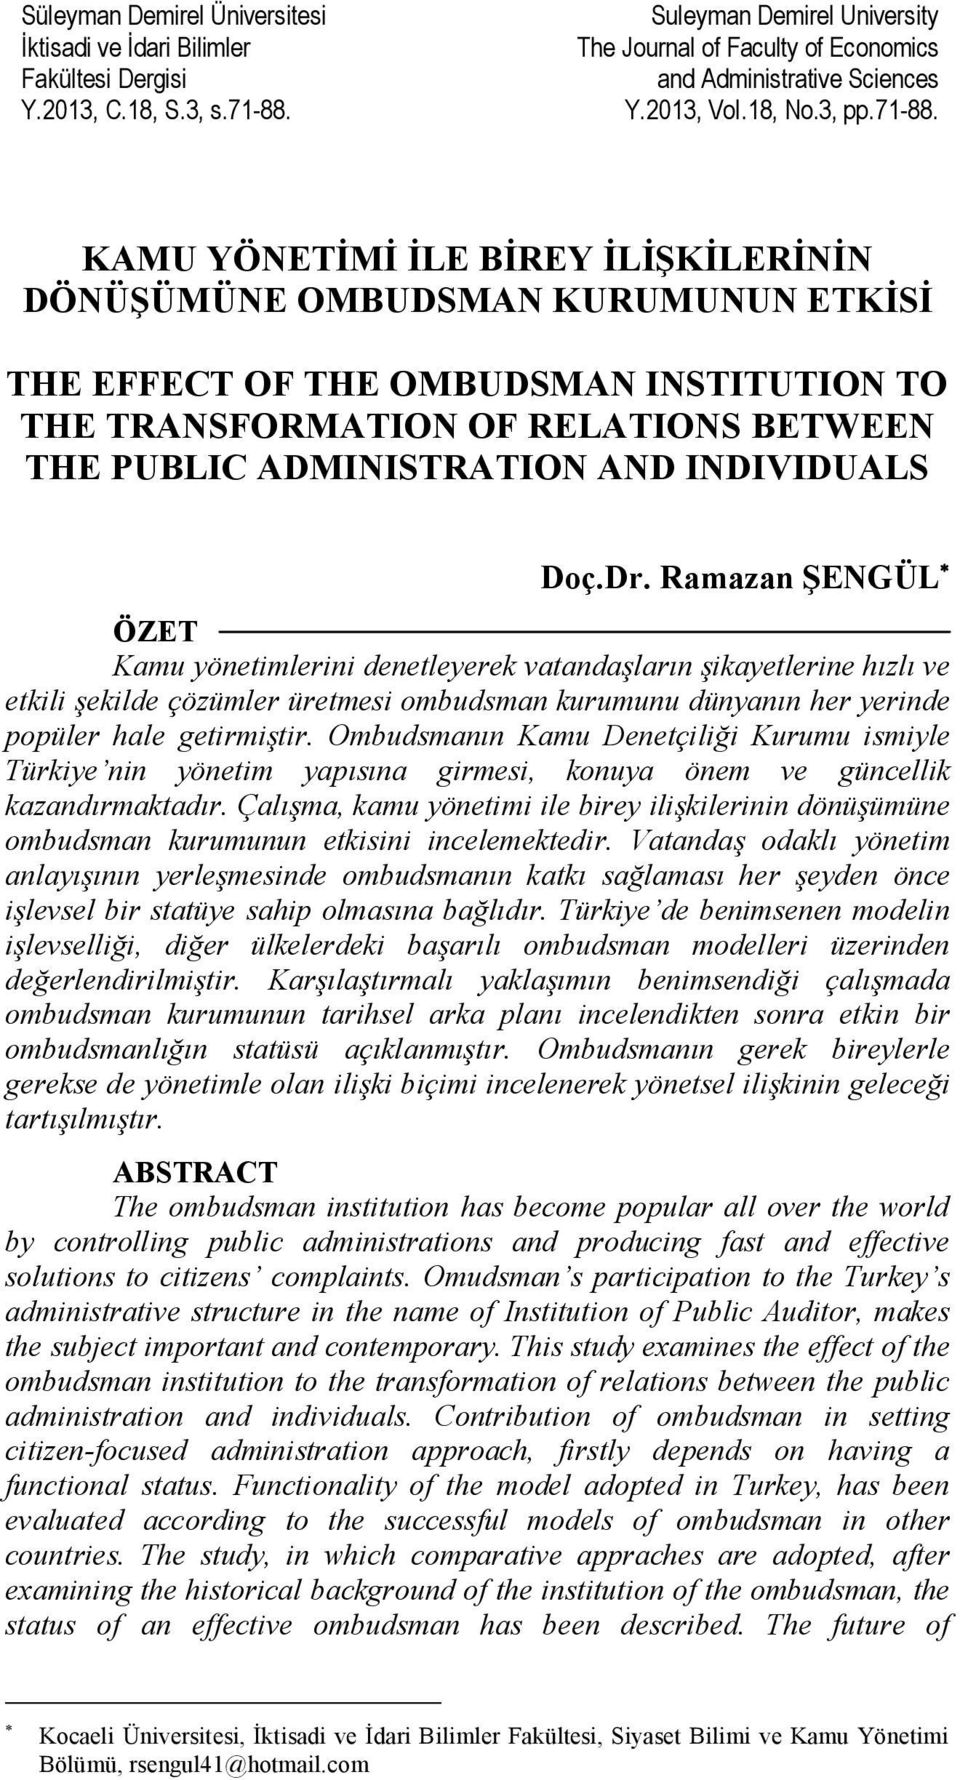 KAMU YÖNETİMİ İLE BİREY İLİŞKİLERİNİN DÖNÜŞÜMÜNE OMBUDSMAN KURUMUNUN ETKİSİ THE EFFECT OF THE OMBUDSMAN INSTITUTION TO THE TRANSFORMATION OF RELATIONS BETWEEN THE PUBLIC ADMINISTRATION AND